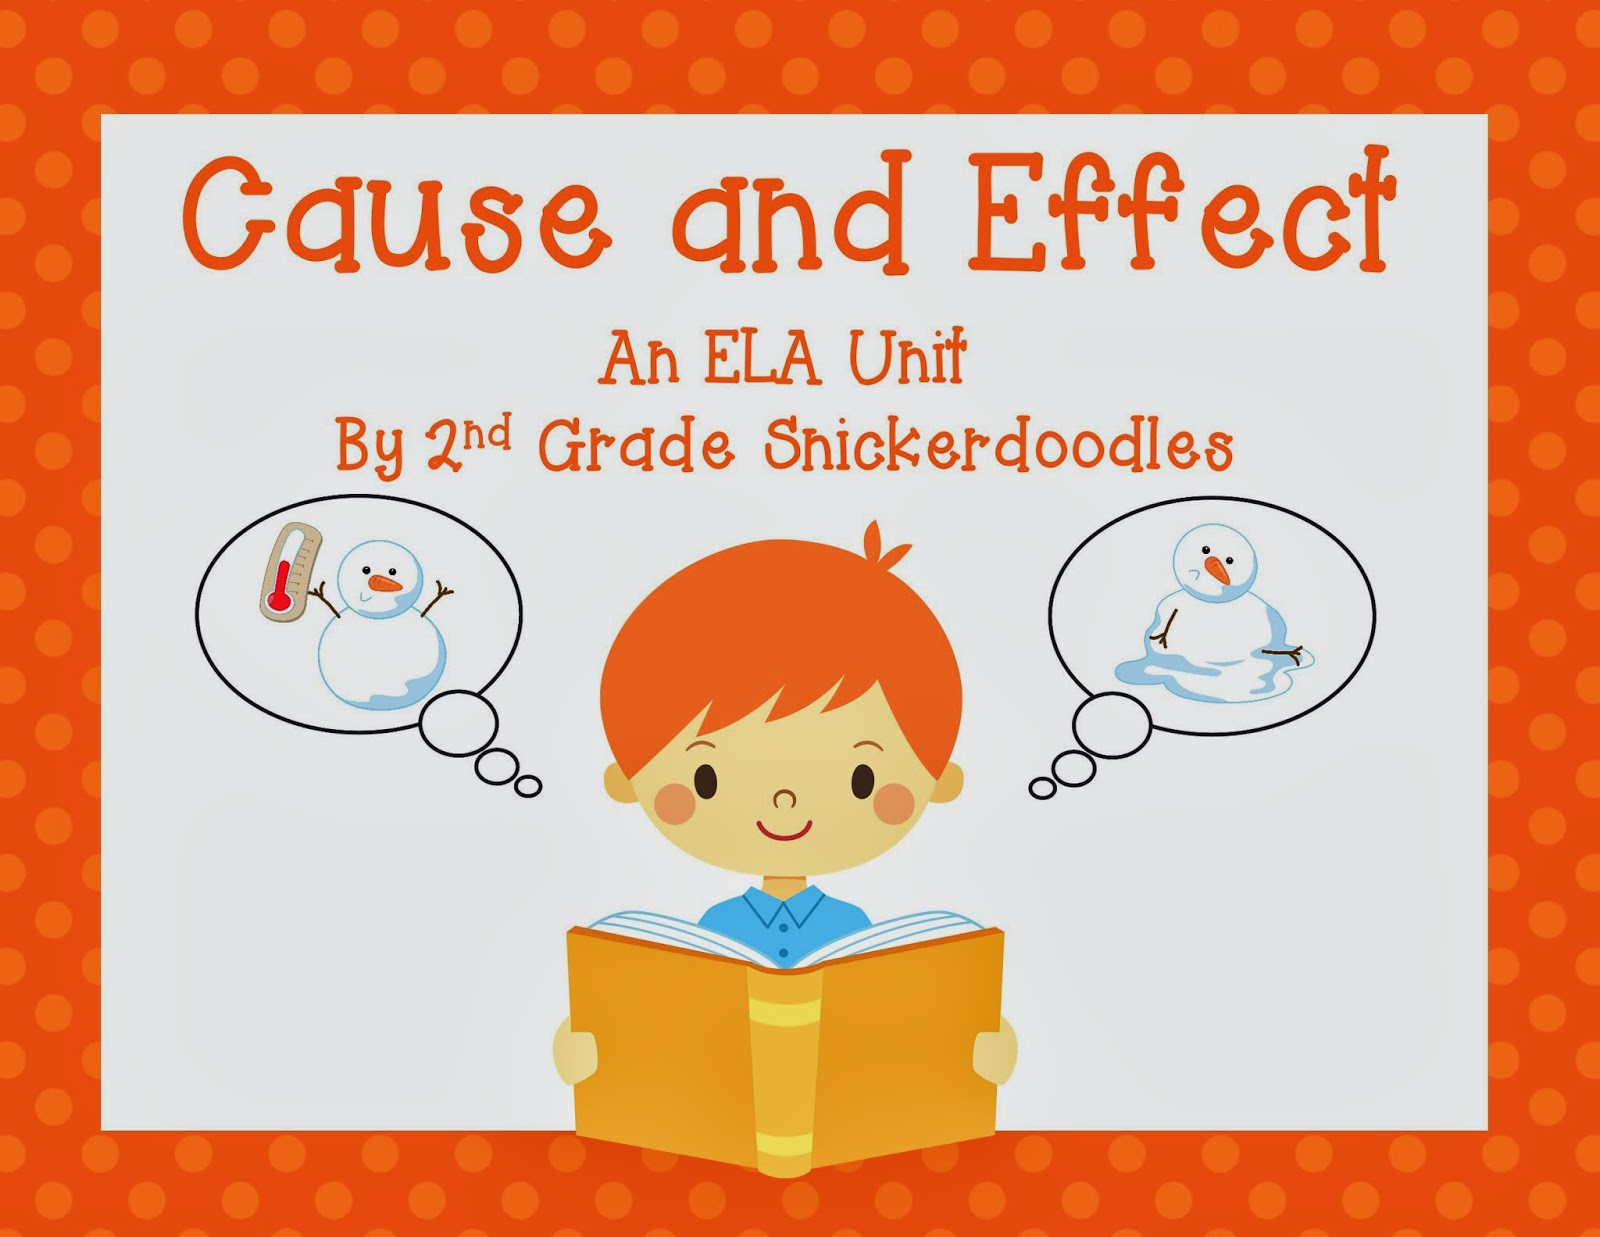 2nd grade snickerdoodles cause and effect anchor chart mentor and reading comprehension activities you can check it out by clicking here scroll down to grab a copy of a sample page from this unit